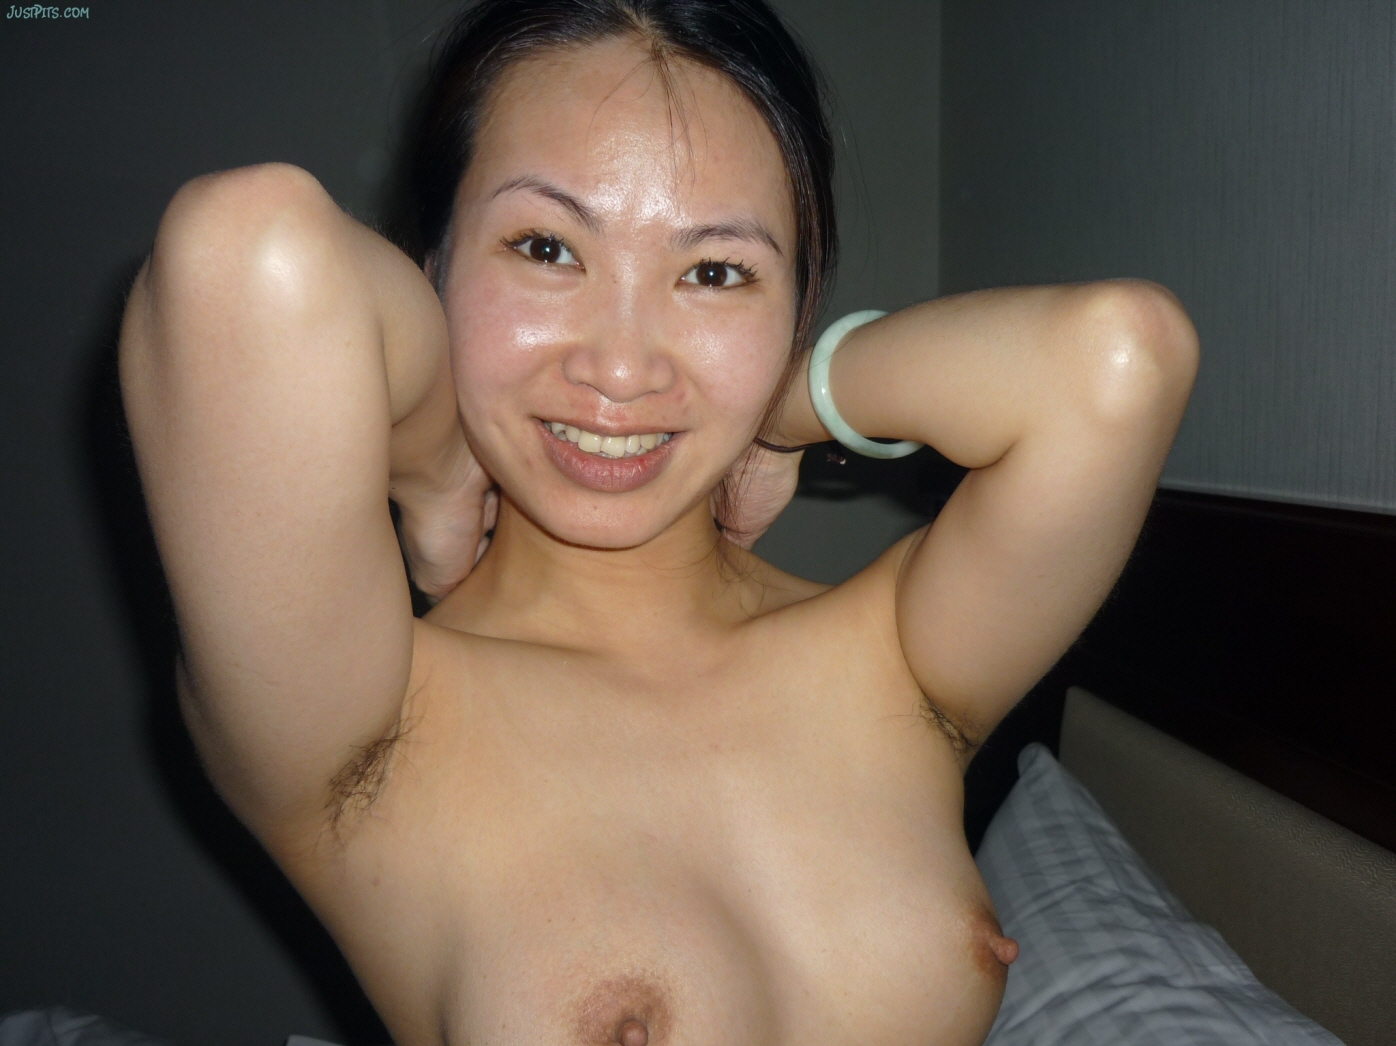 Chinese women flood social media with hairy underarm selfies